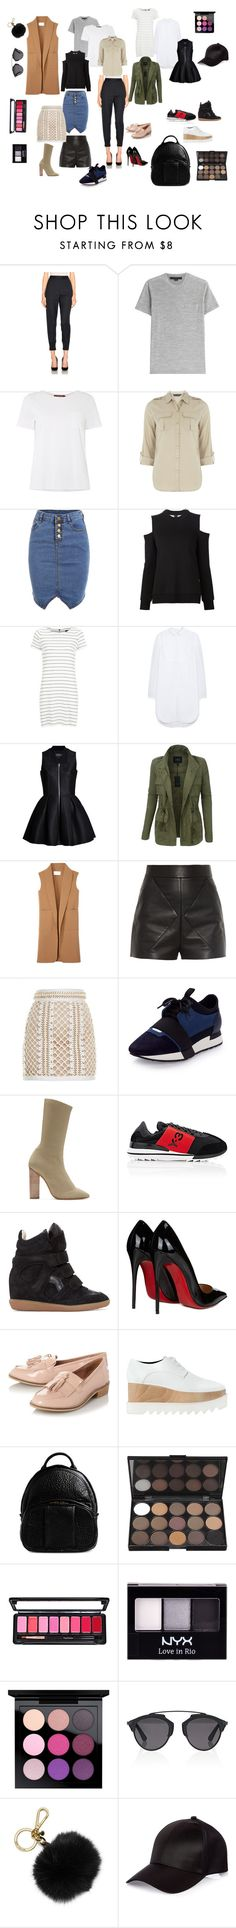 """Working capsule make-up artist"" by lev4yka on Polyvore featuring мода, 3.1 Phillip Lim, Alexander Wang, MaxMara, Dorothy Perkins, Vera Wang, VILA, Mulberry, LE3NO и Balenciaga"